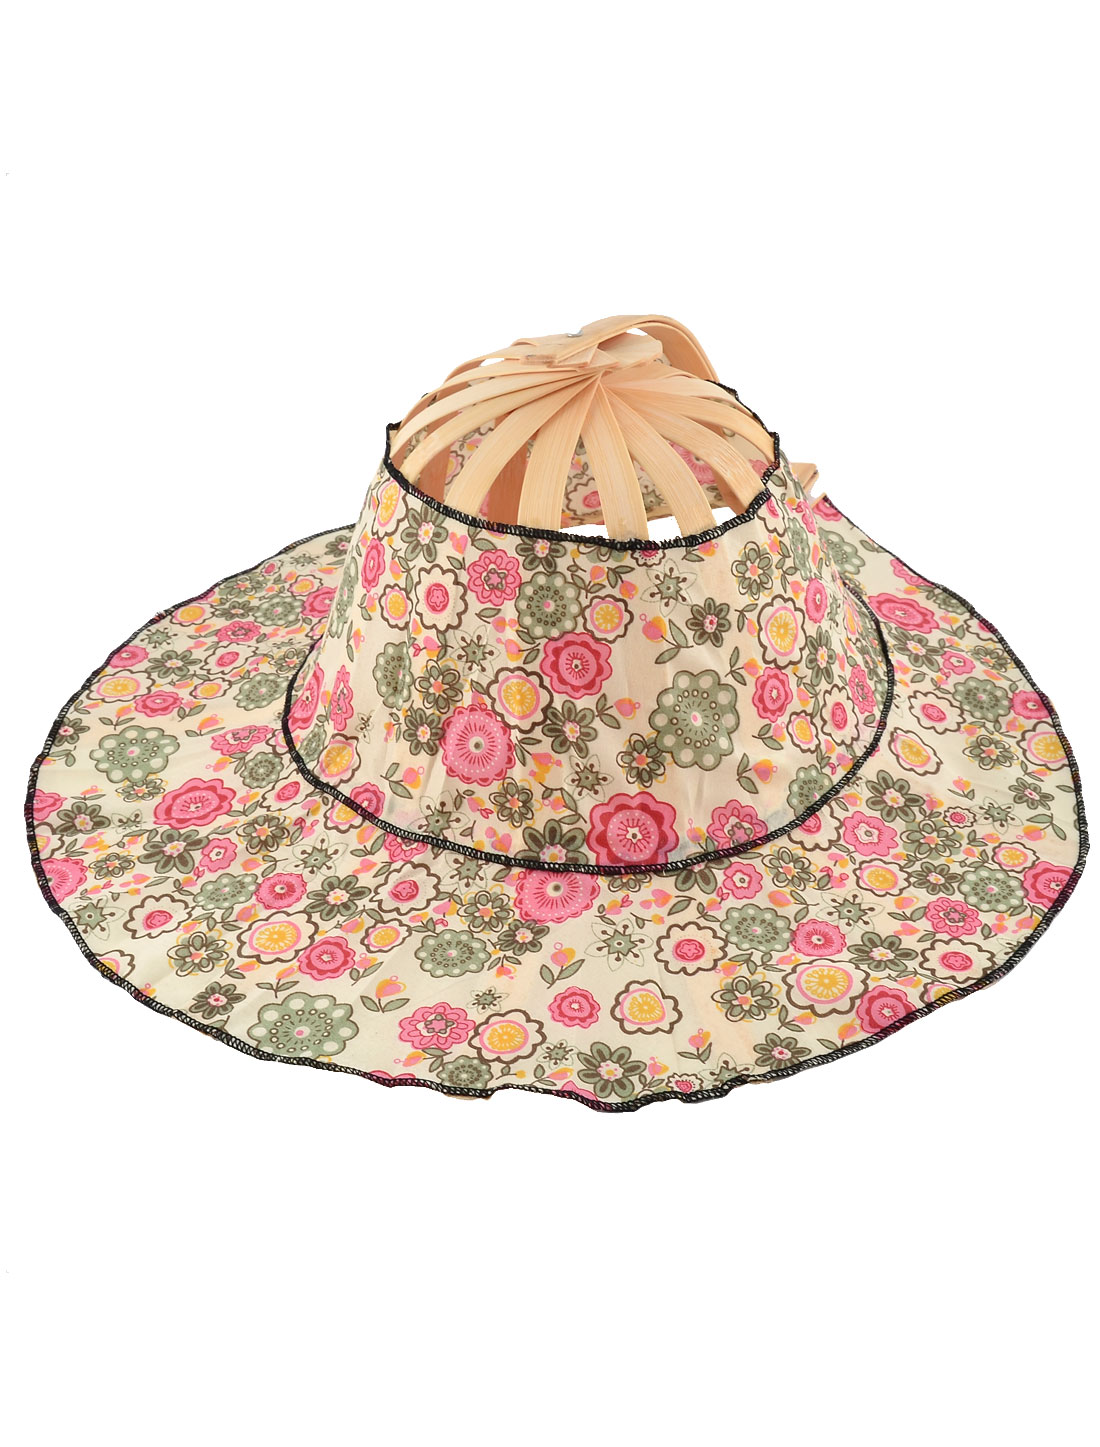 Wedding Party Women Bamboo Frame Floral Pattern Folding Hand Fan Hat Cap Colorful